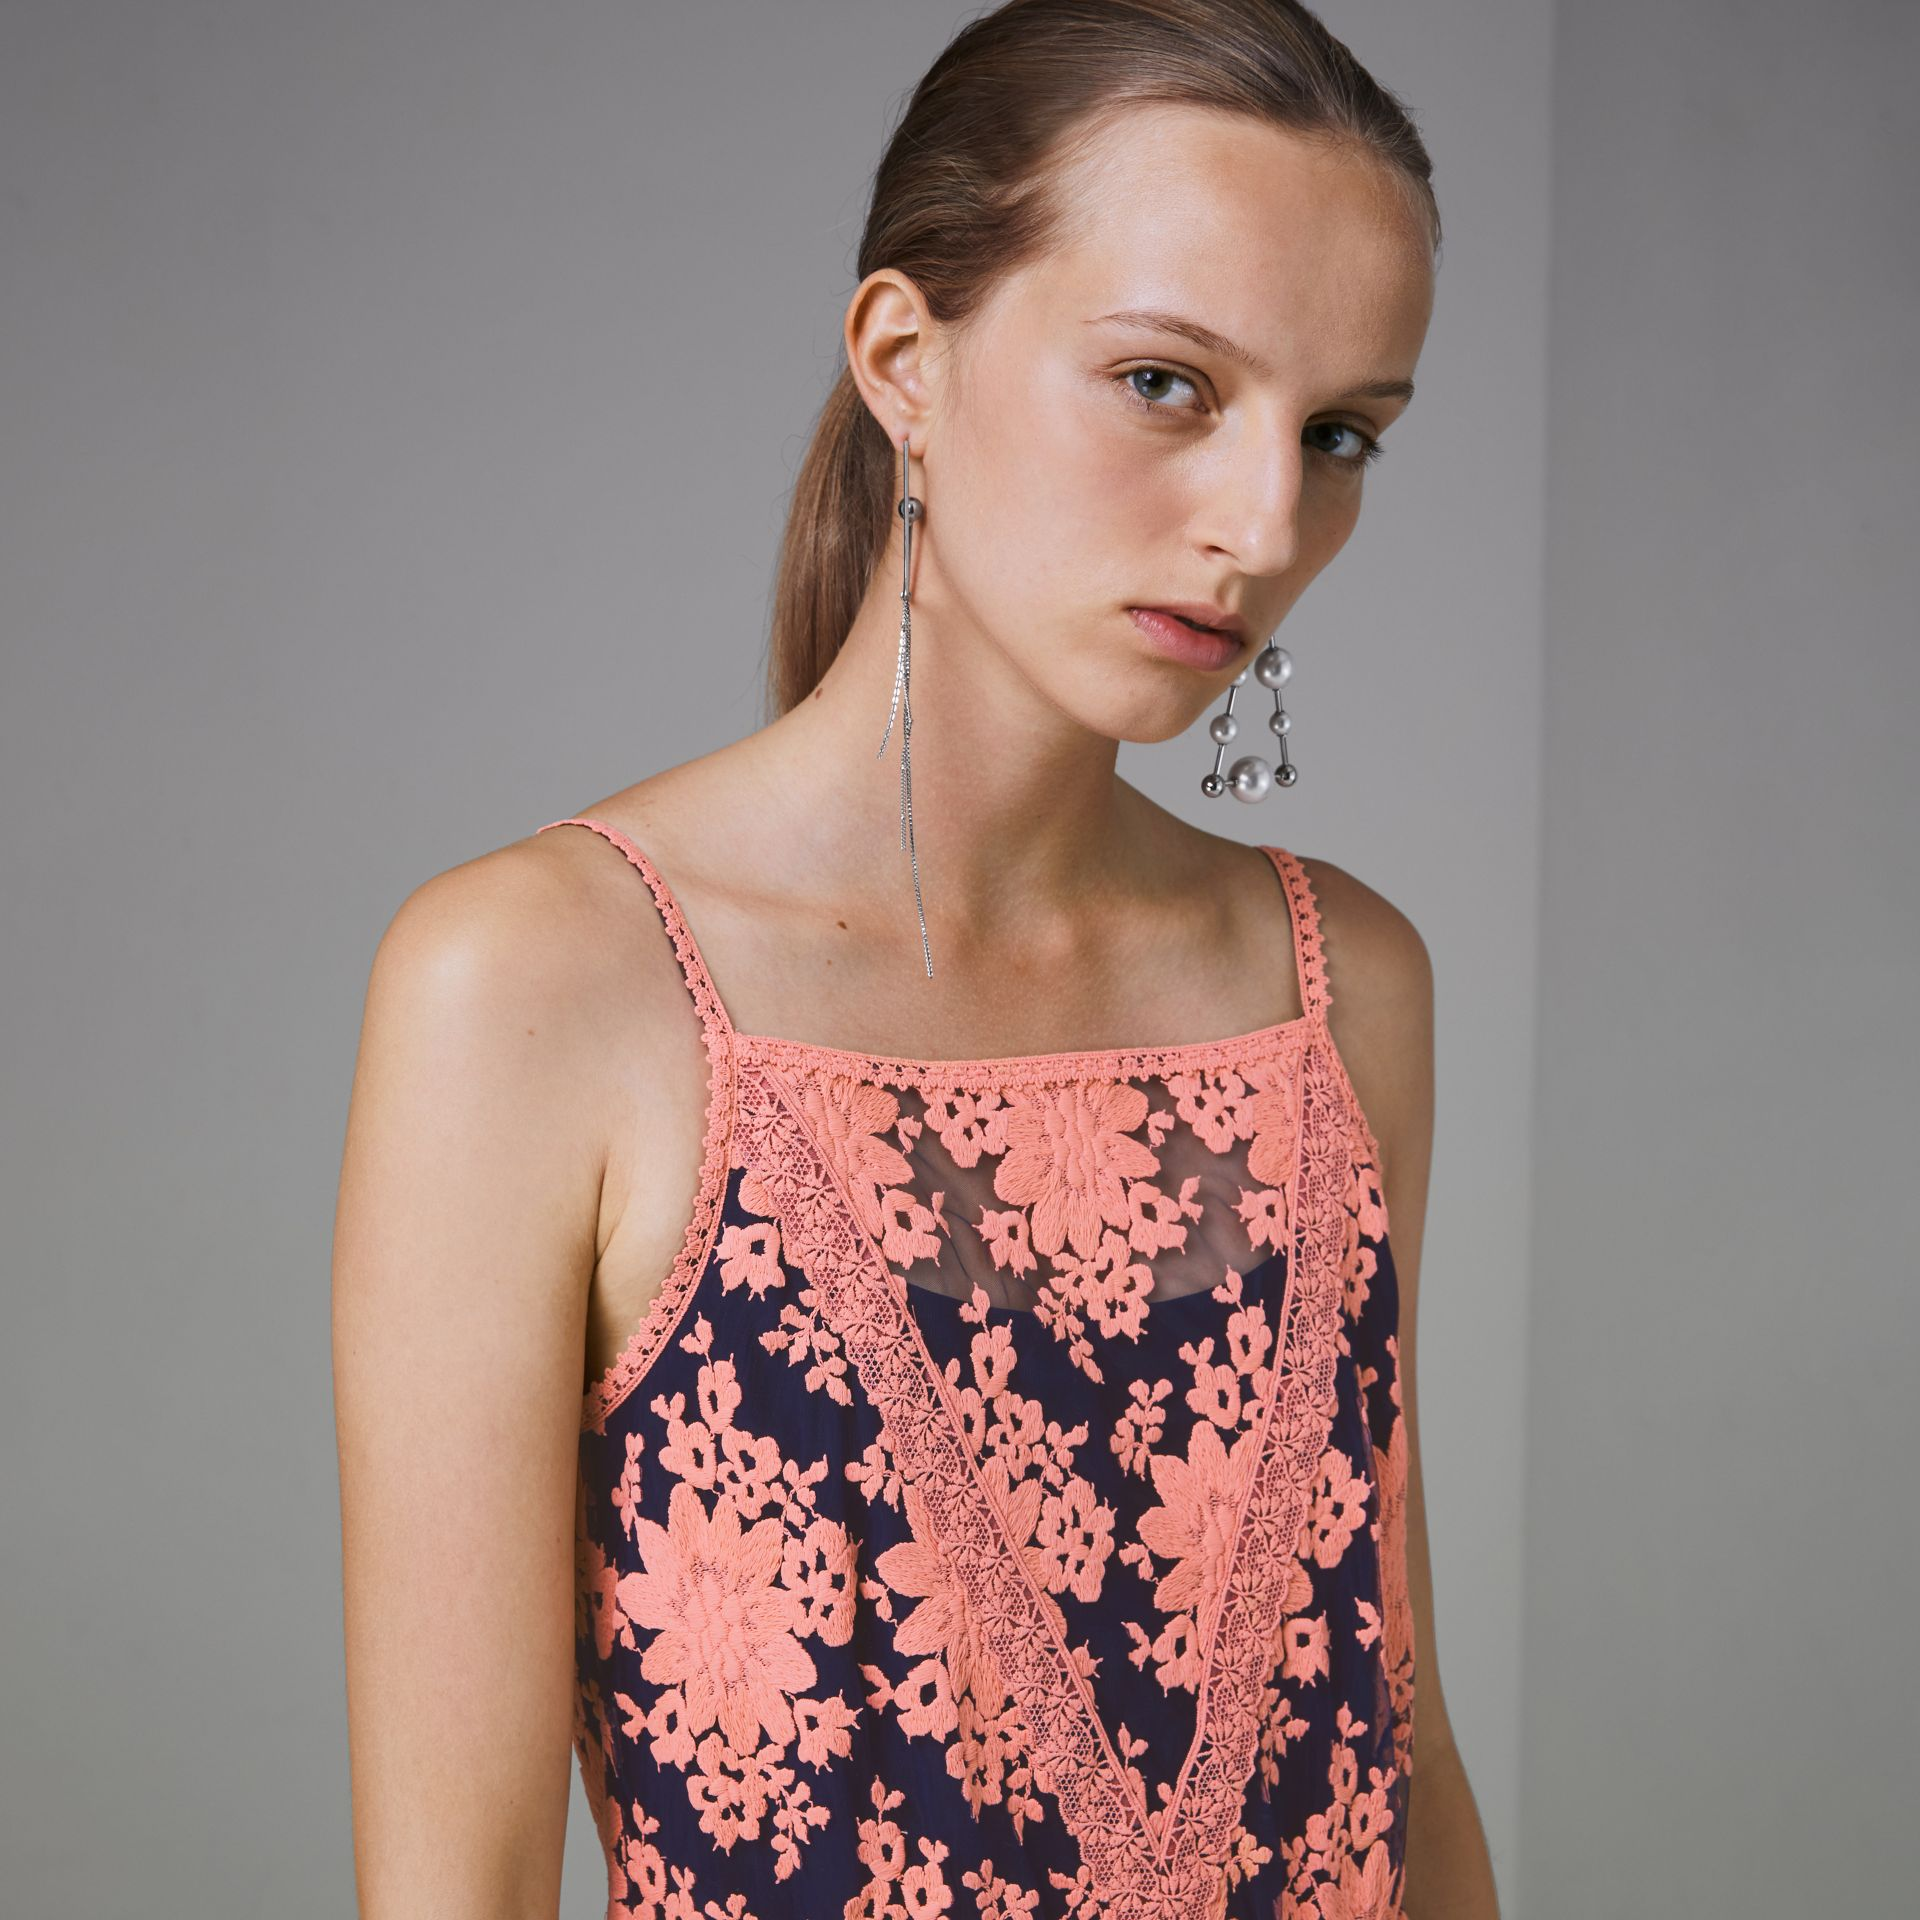 Floral-embroidered Sleeveless Dress in Rose/midnight Blue - Women | Burberry United States - gallery image 1